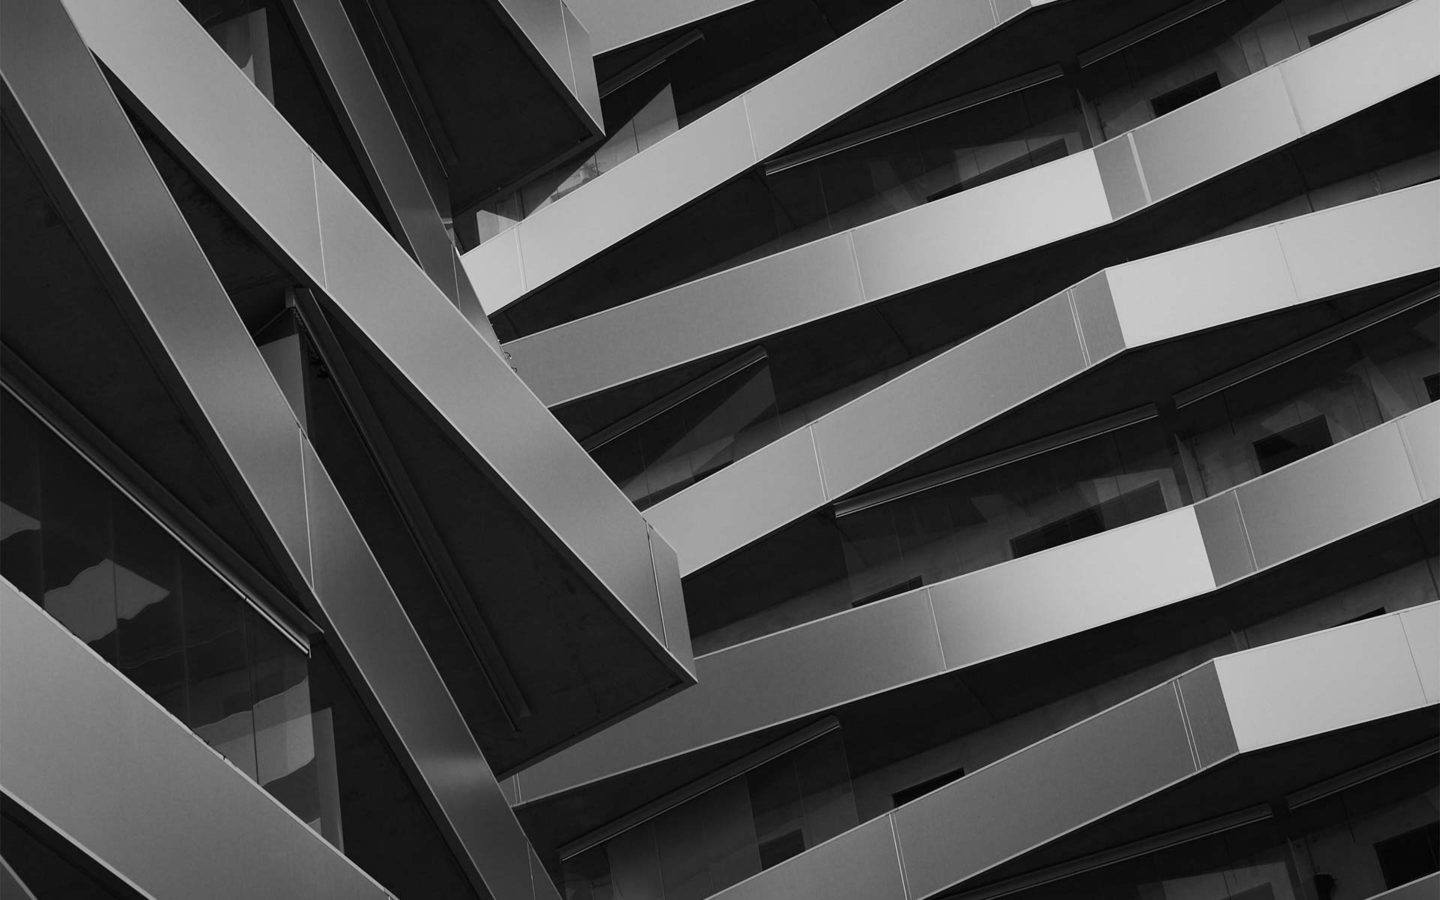 abstract image of many stacked and angled balconies